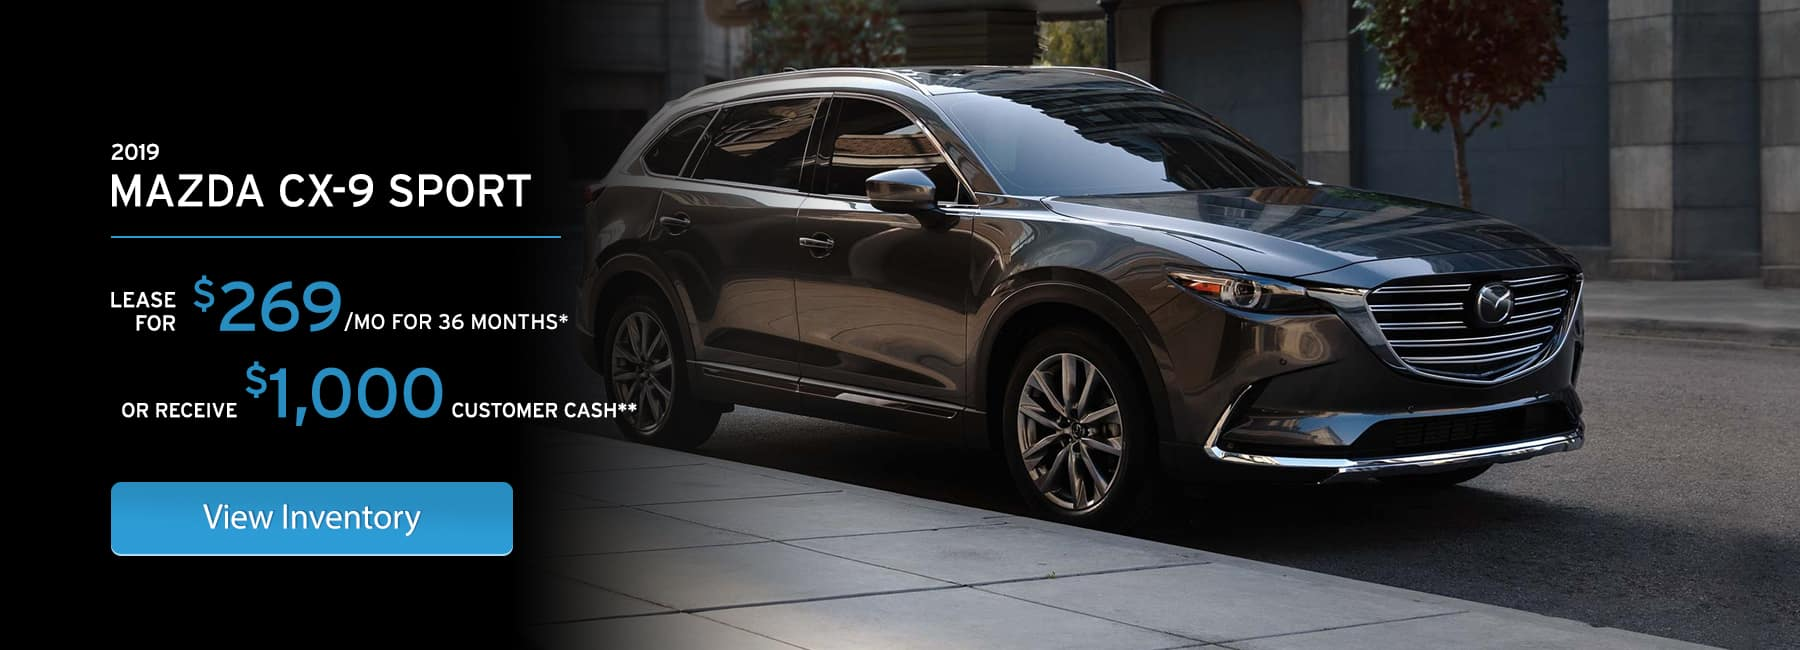 Mazda CX9 Offer Near Chicago